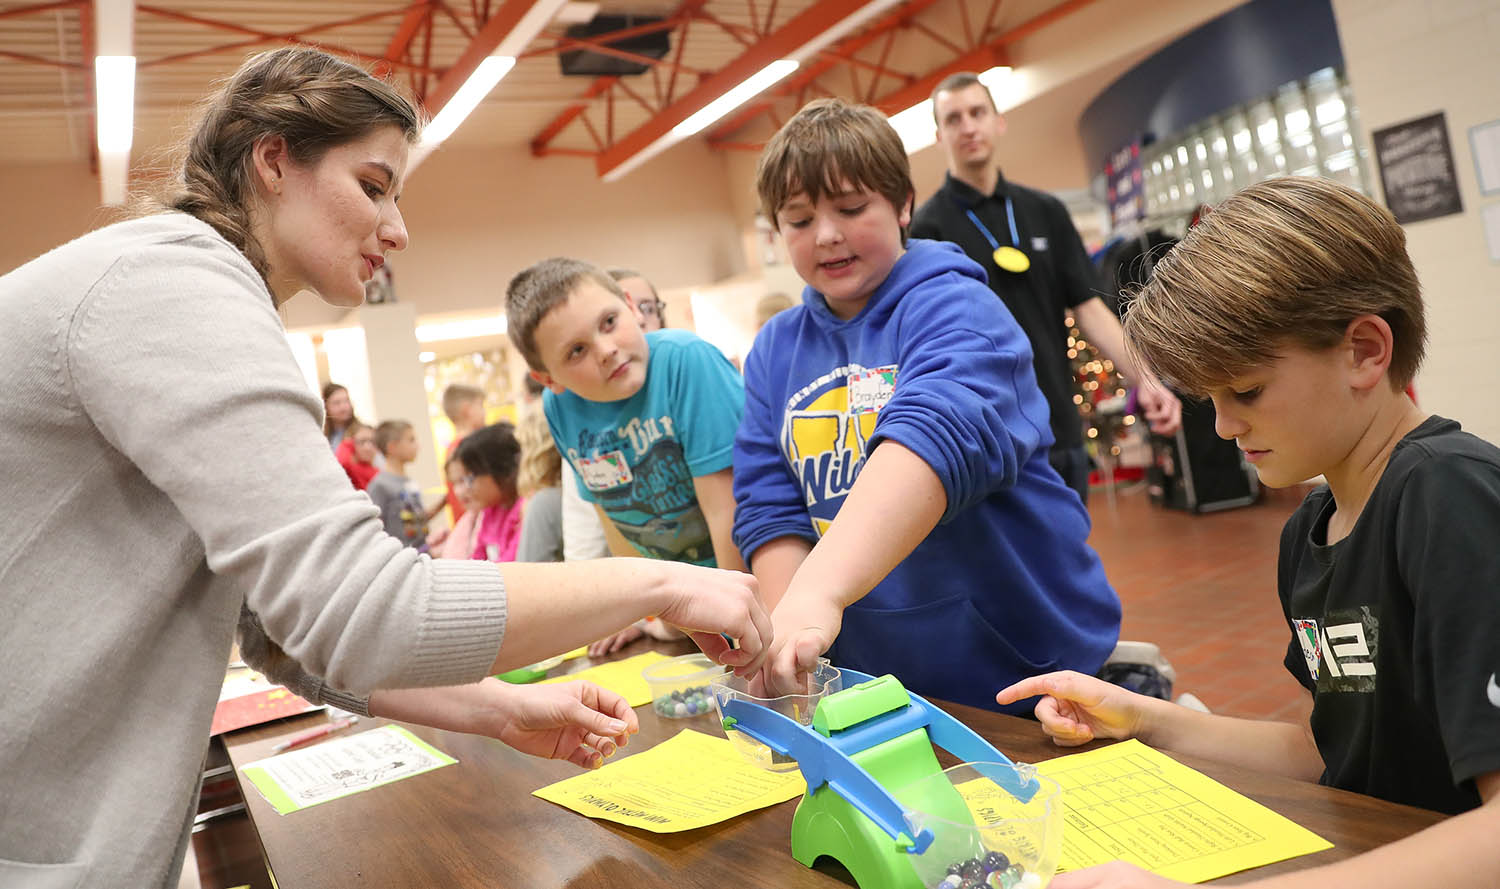 Shanna Laucomer, left, was one of more than 40 UNK students who led Friday's Measurement Olympics at Windy Hills Elementary School in Kearney.